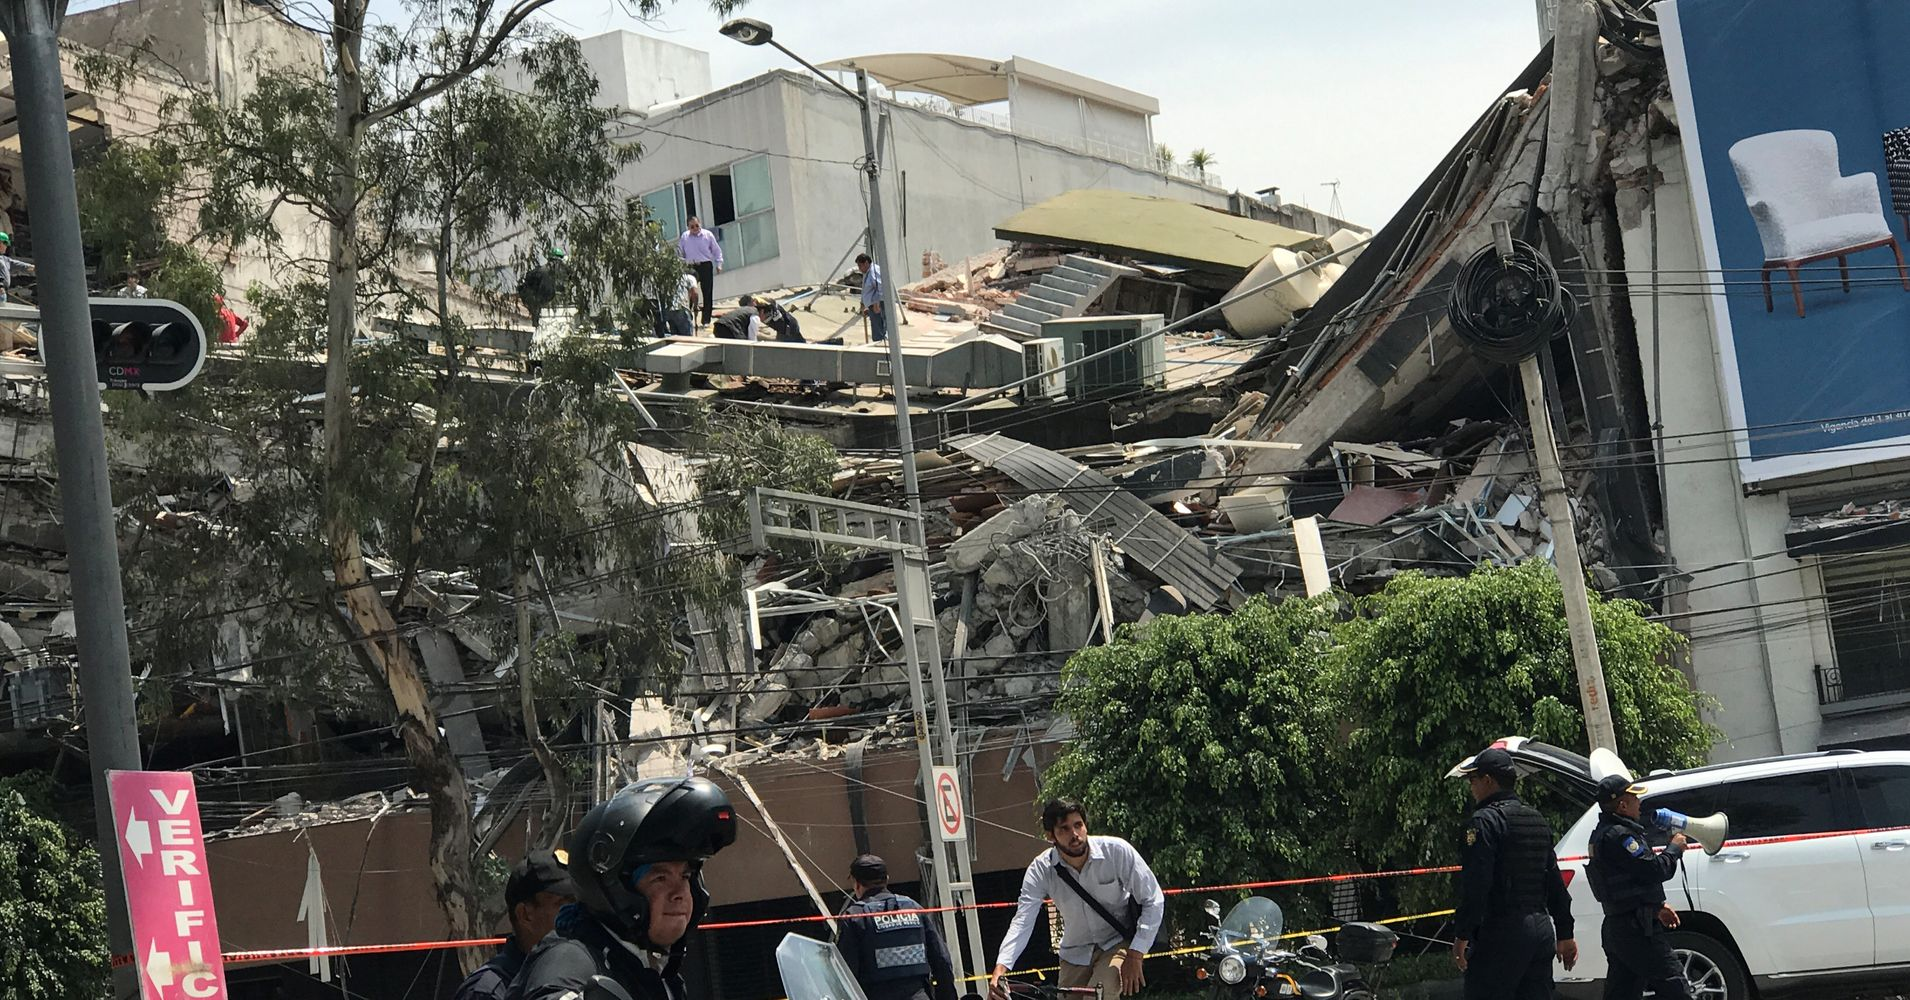 Powerful Earthquake Kills More Than 140 In Central Mexico